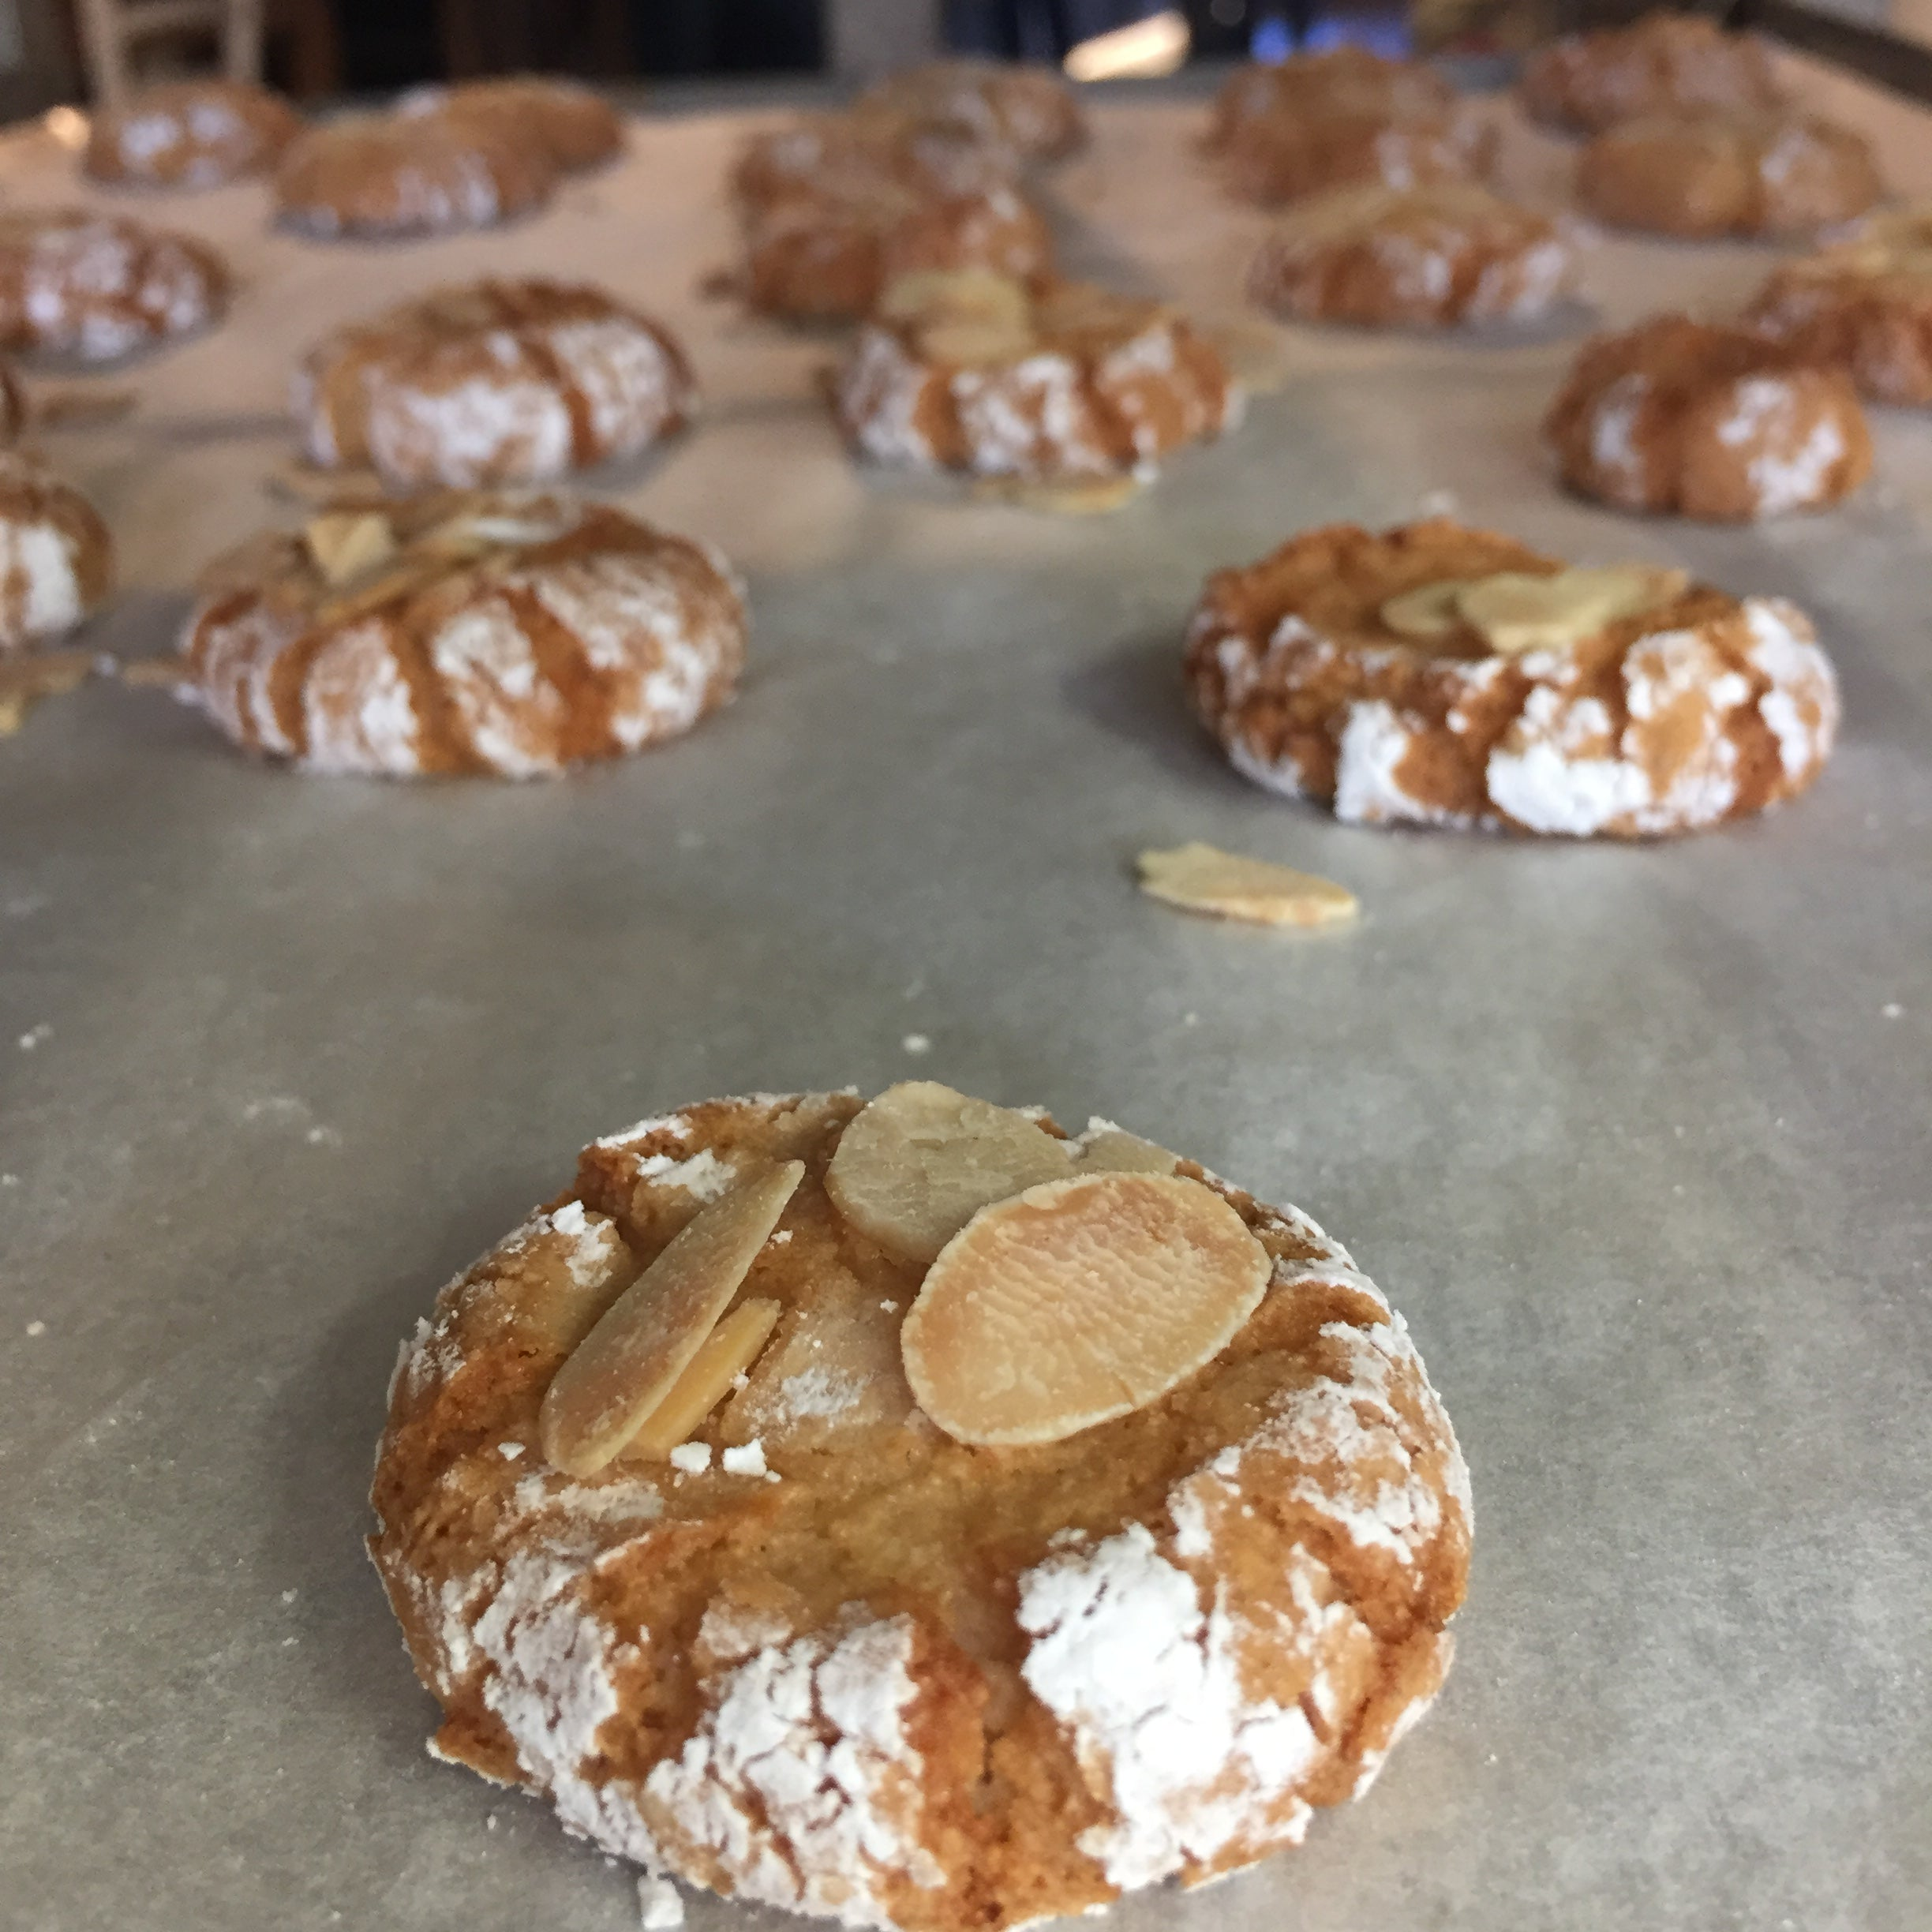 Almond biscuits